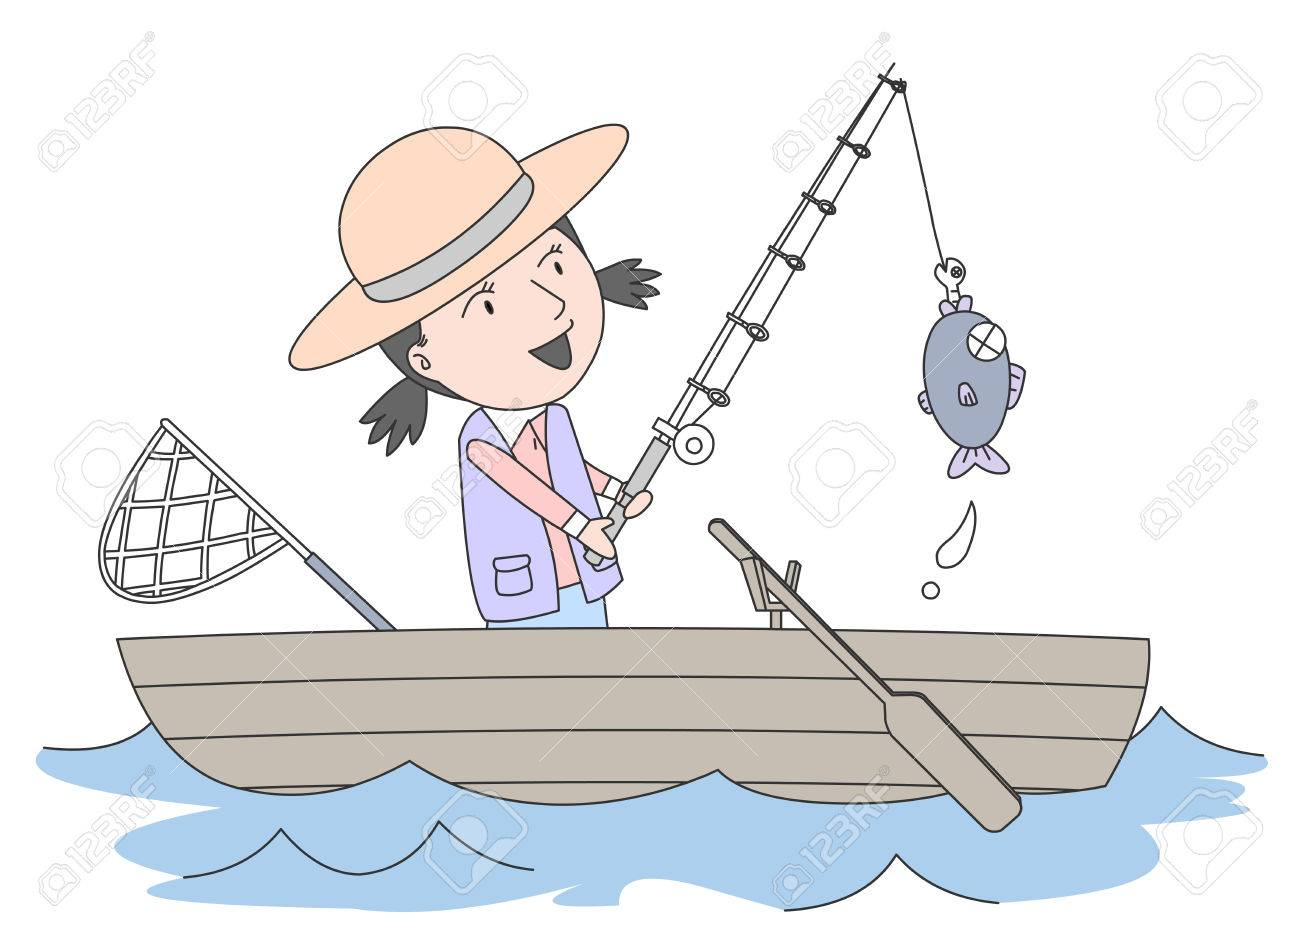 Girl fishing on her boat.